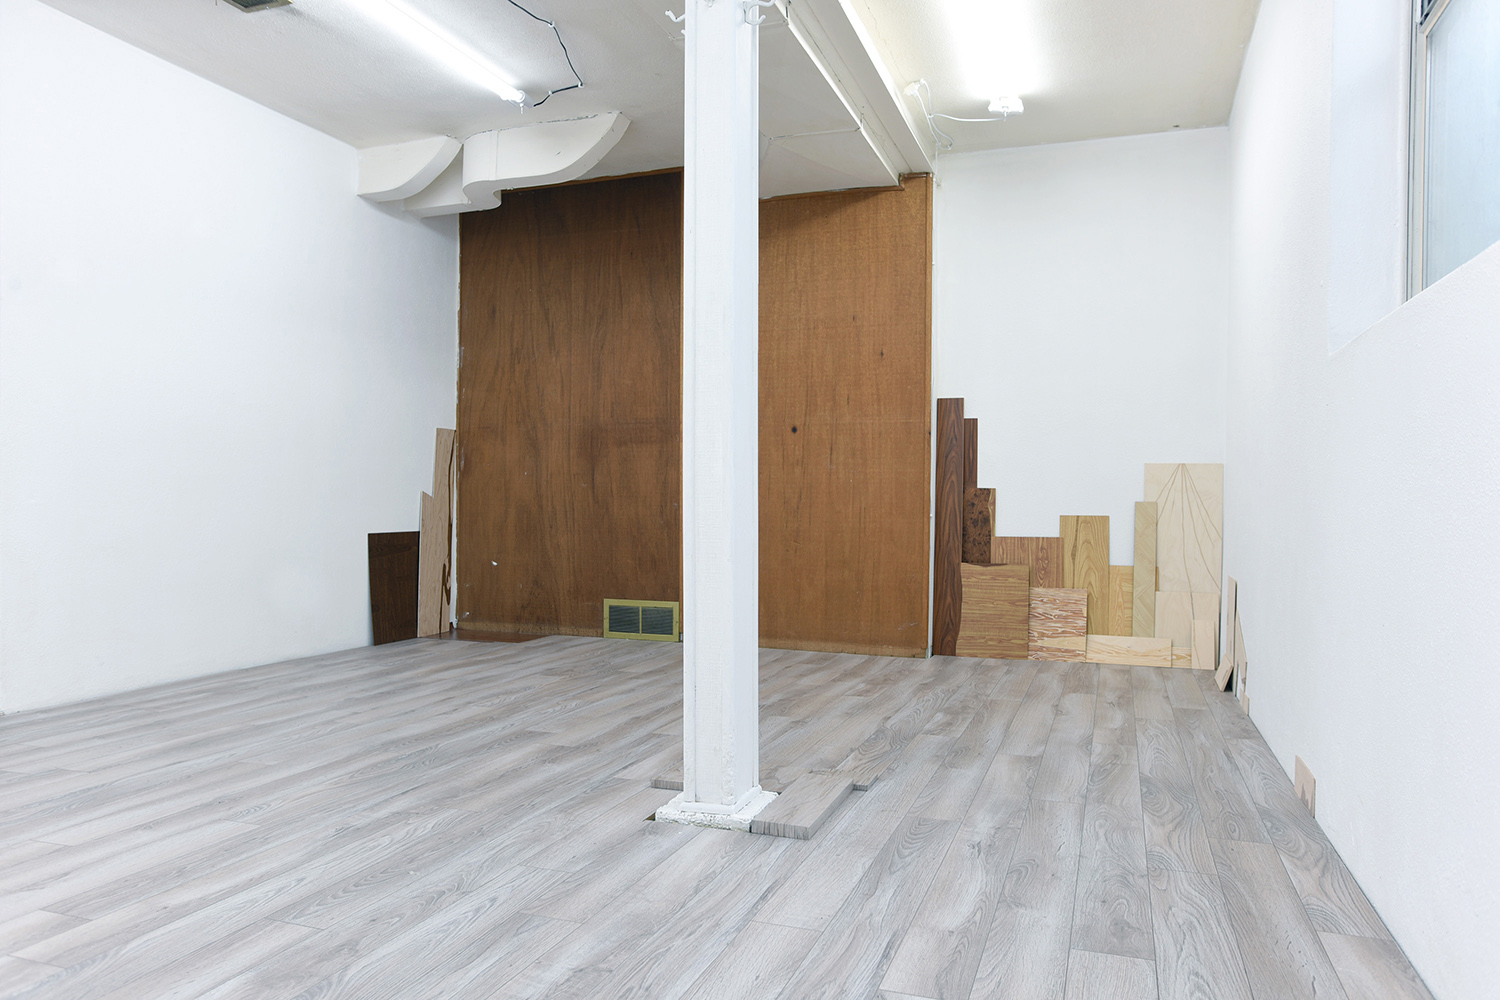 Masquetry V , 2014–2018 Adhesive vinyl on found laminate and wood   Stain Paintings , 2018 Acrylic on found vinyl flooring